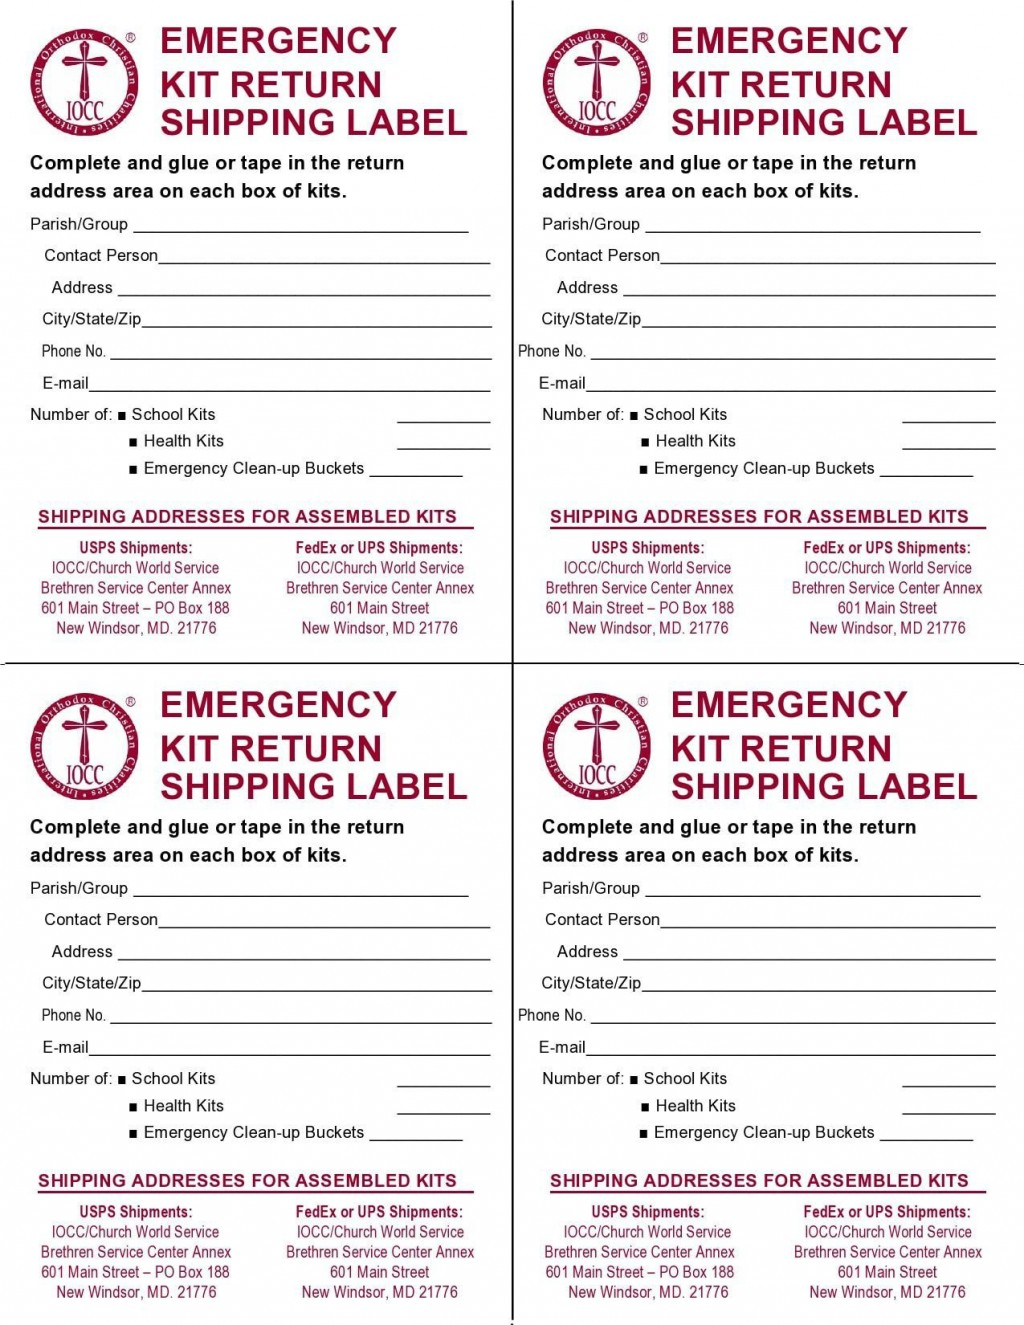 009 Dreaded Free Shipping Label Template High Def  Templates Usp Avery WordLarge